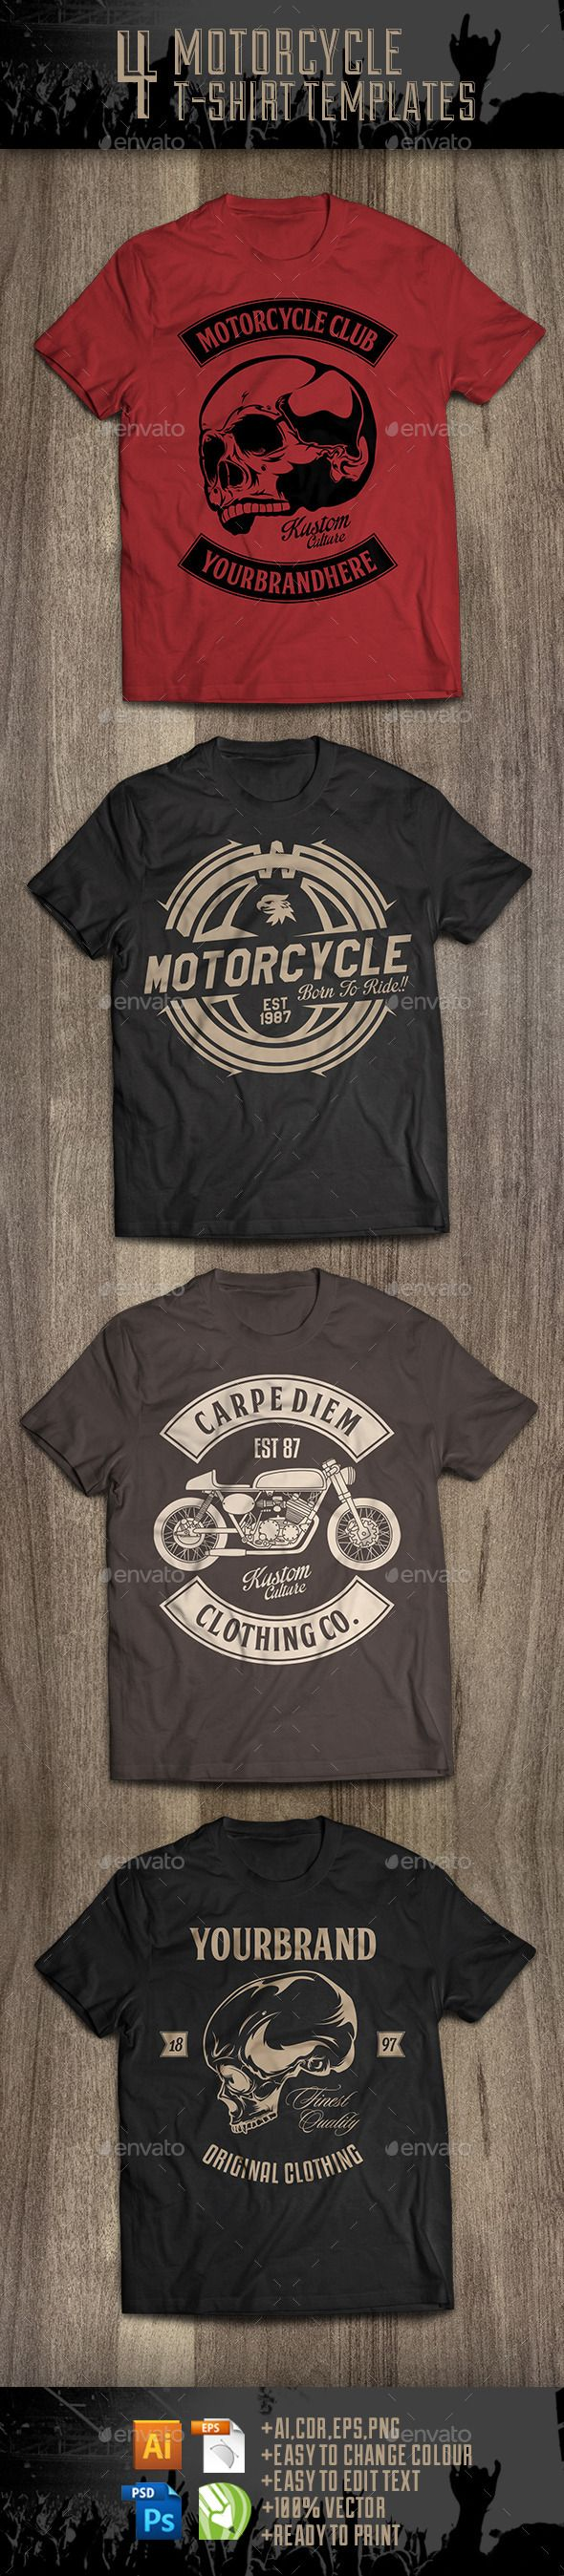 4 Motorcycle T-Shirt Template Vector EPS, AI. Download here: http://graphicriver.net/item/4-motorcycle-tshirt-templates/10019892?ref=ksioks